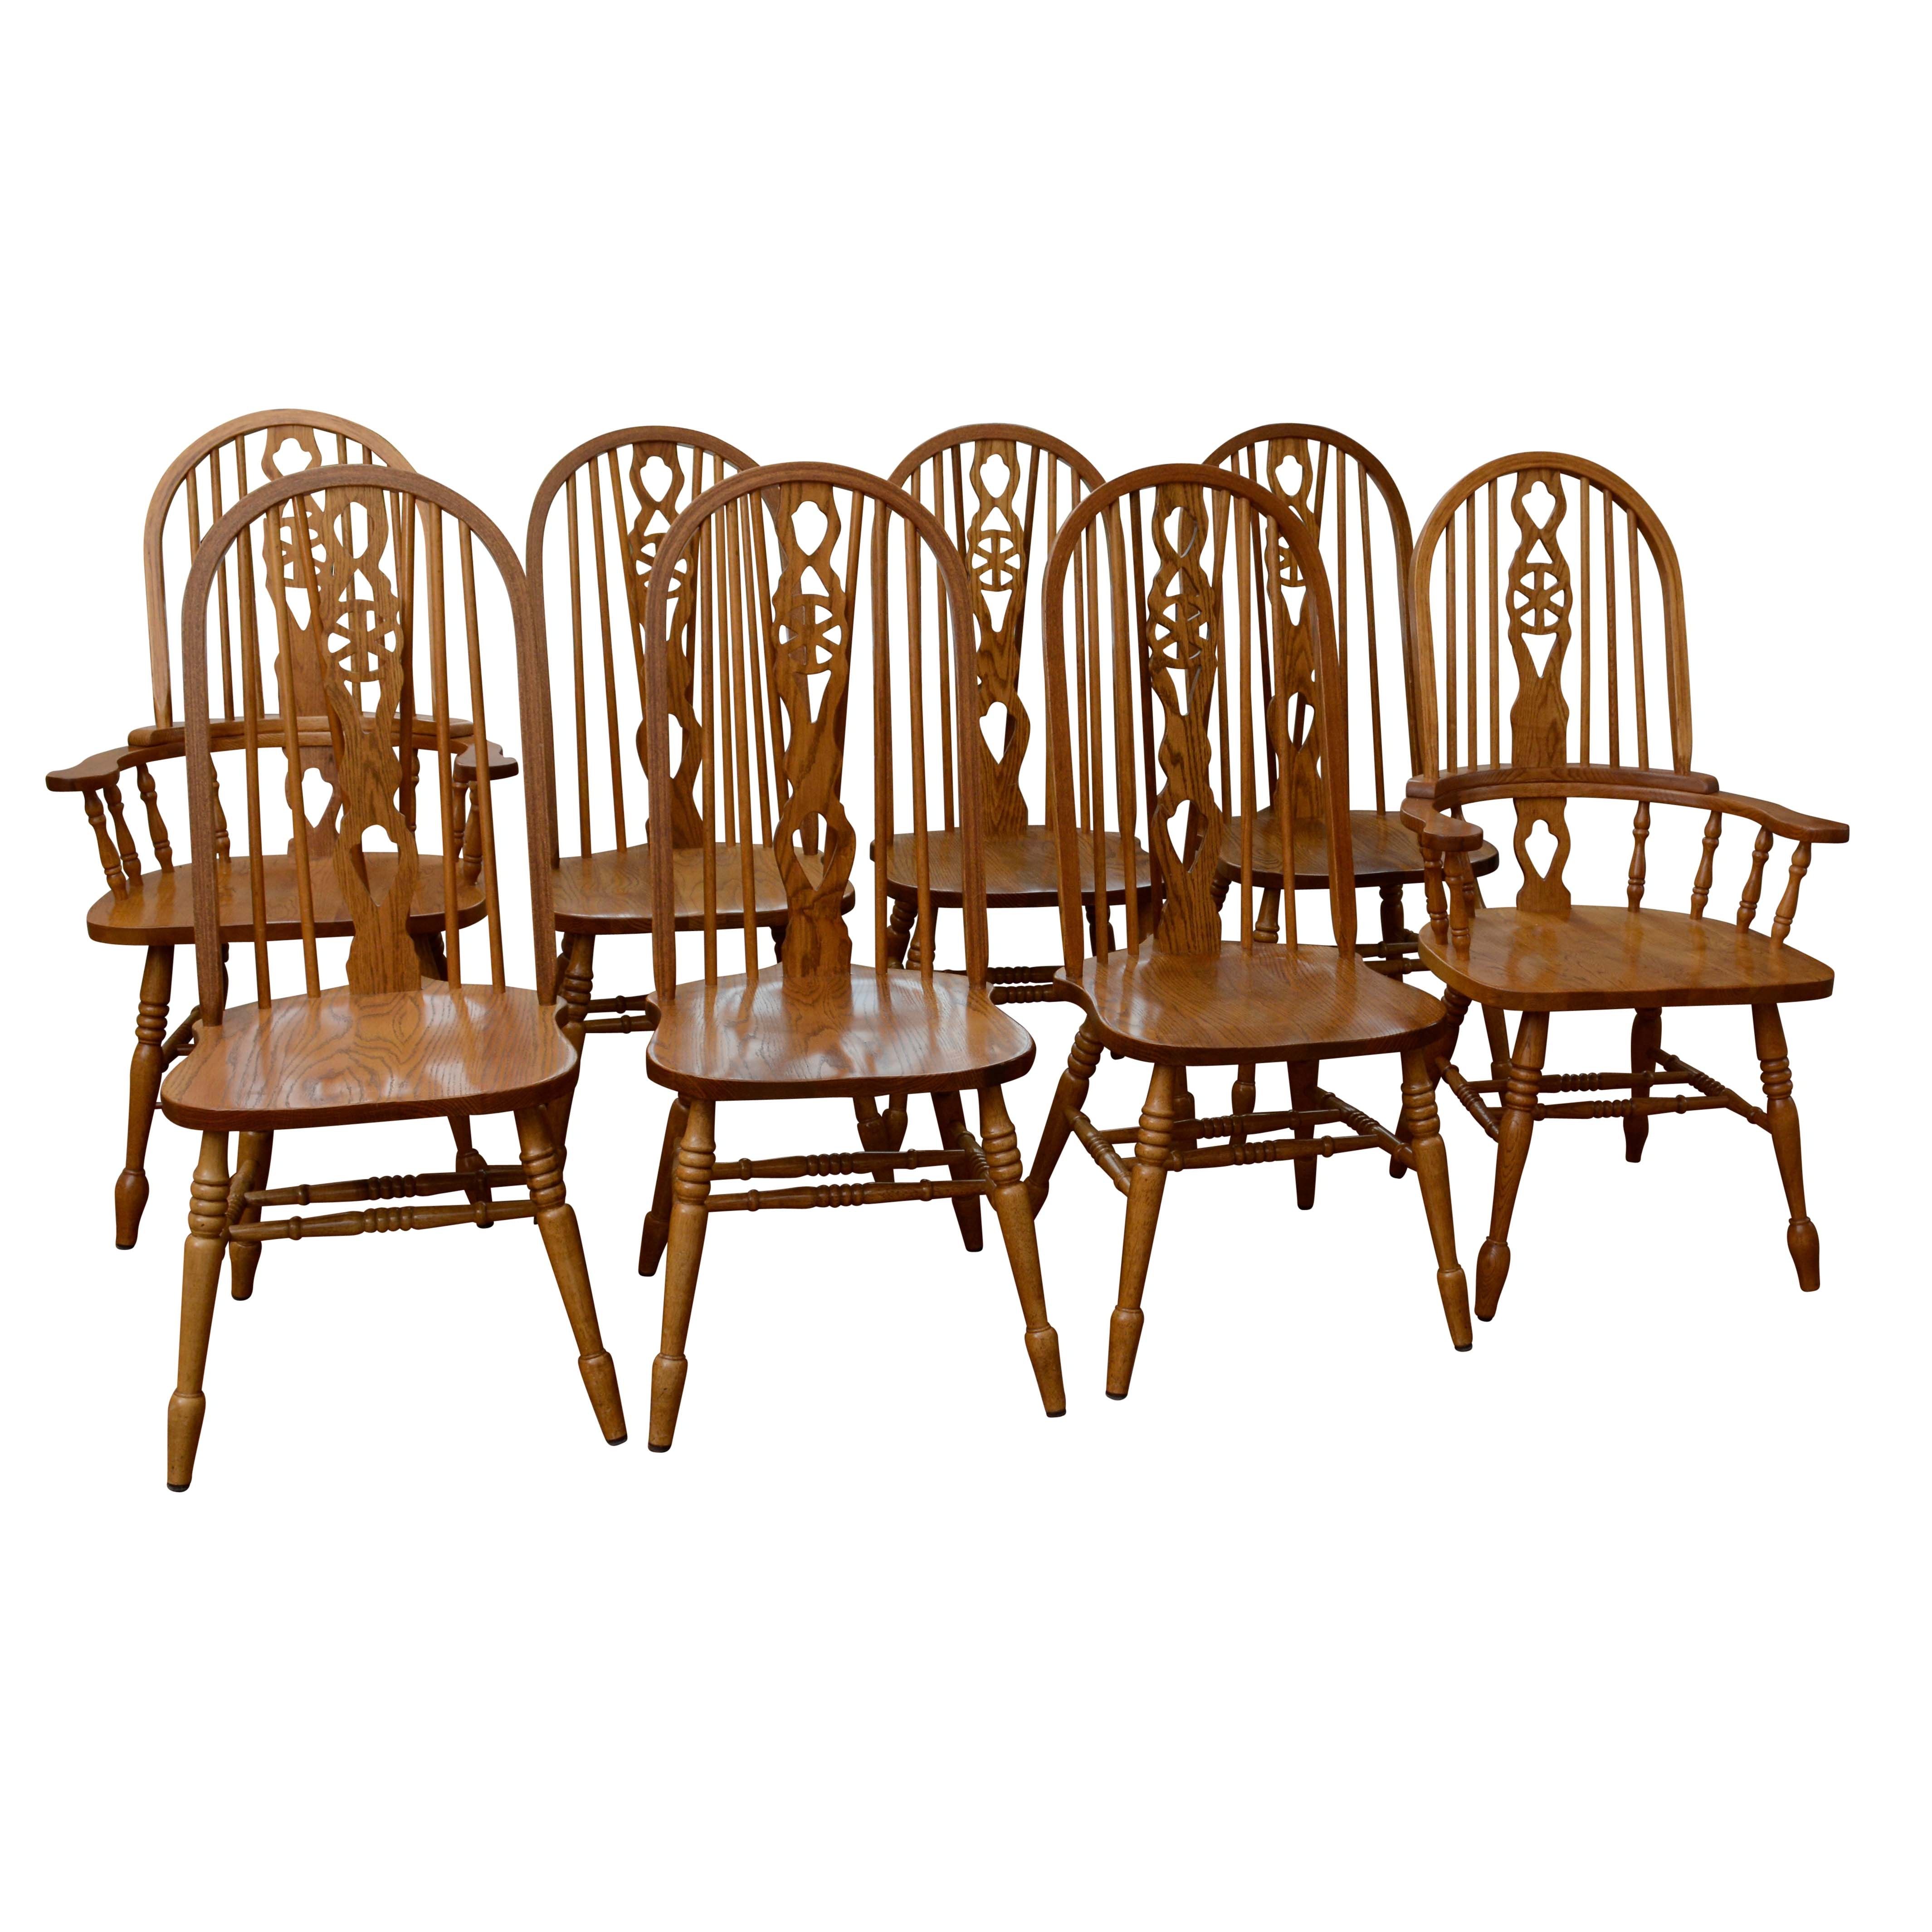 Pierced Splat Spindle Back Dining Chairs